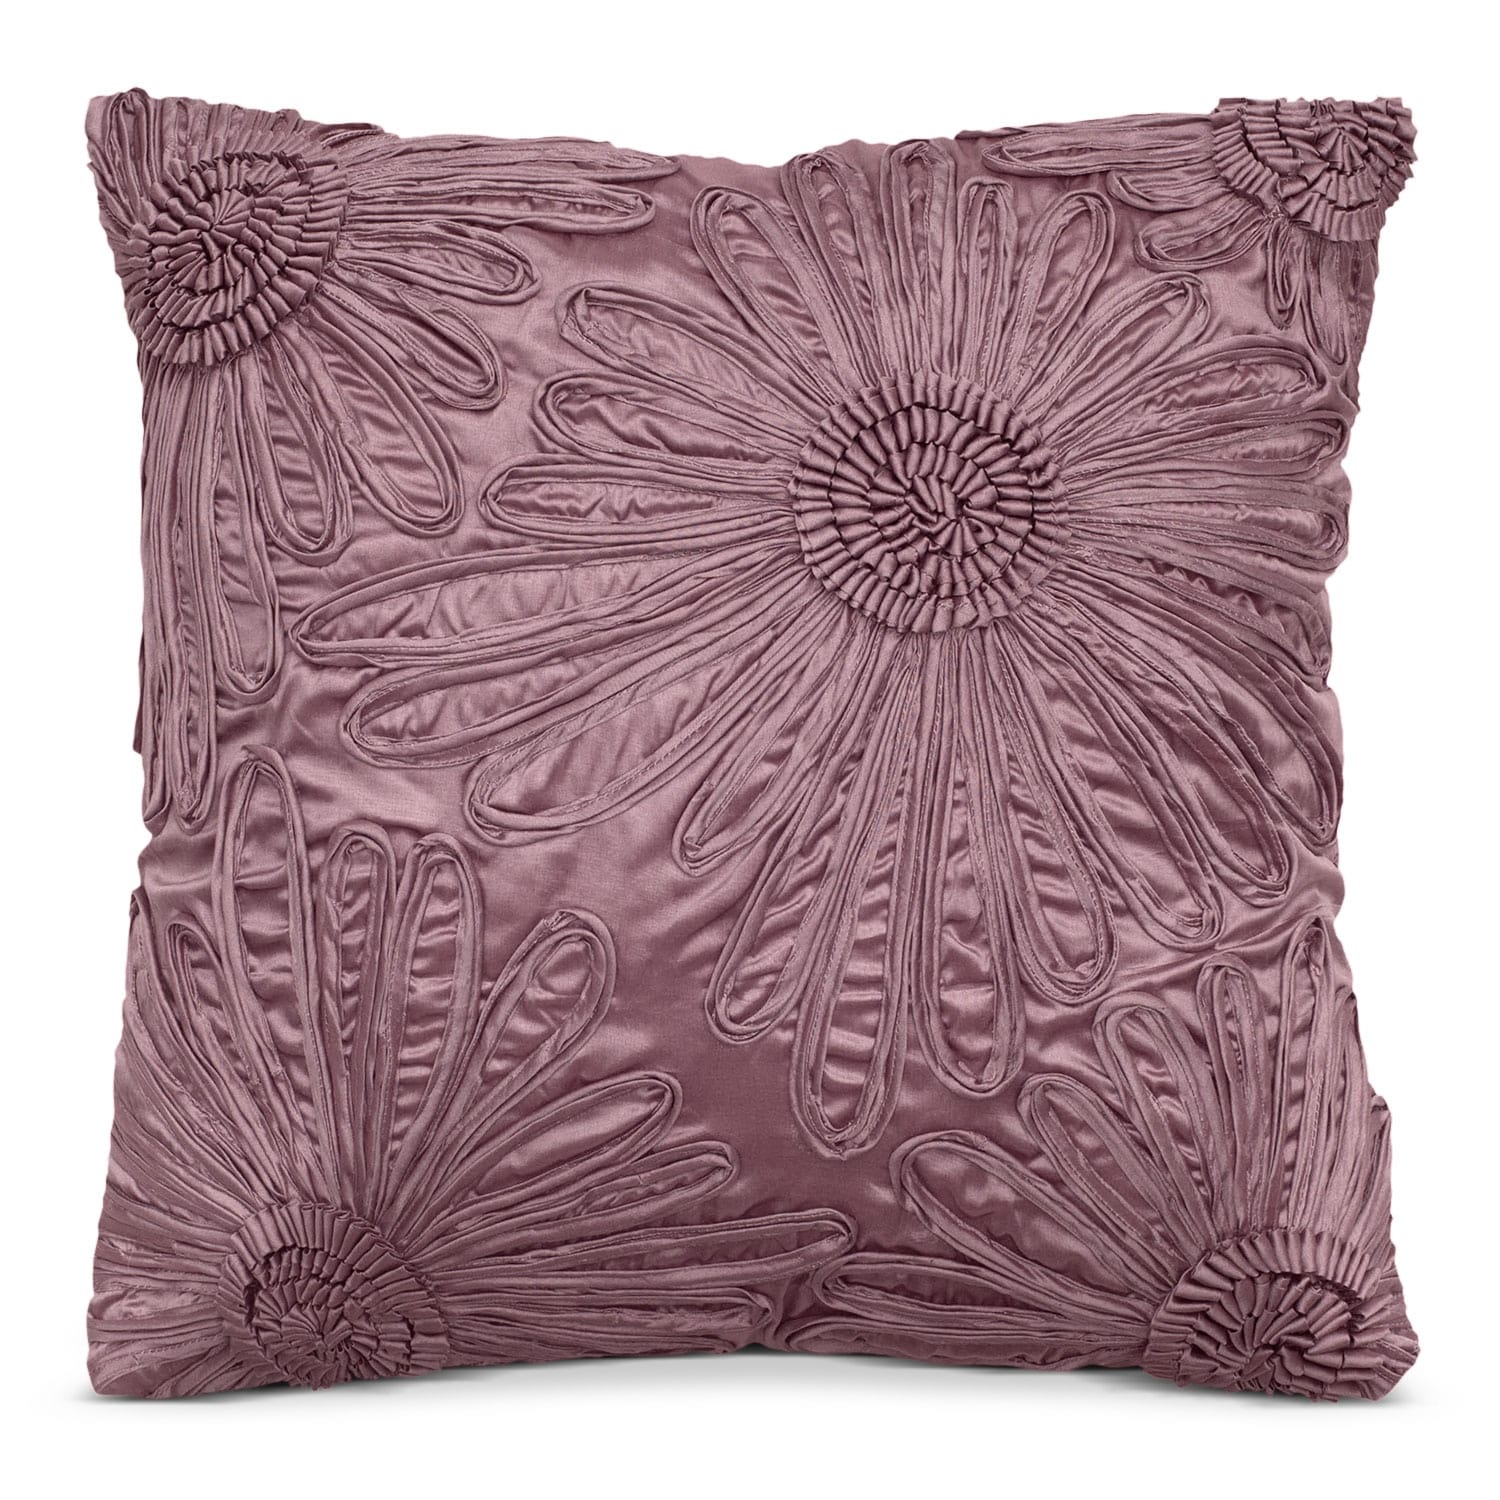 Hush Plum Decorative Pillow